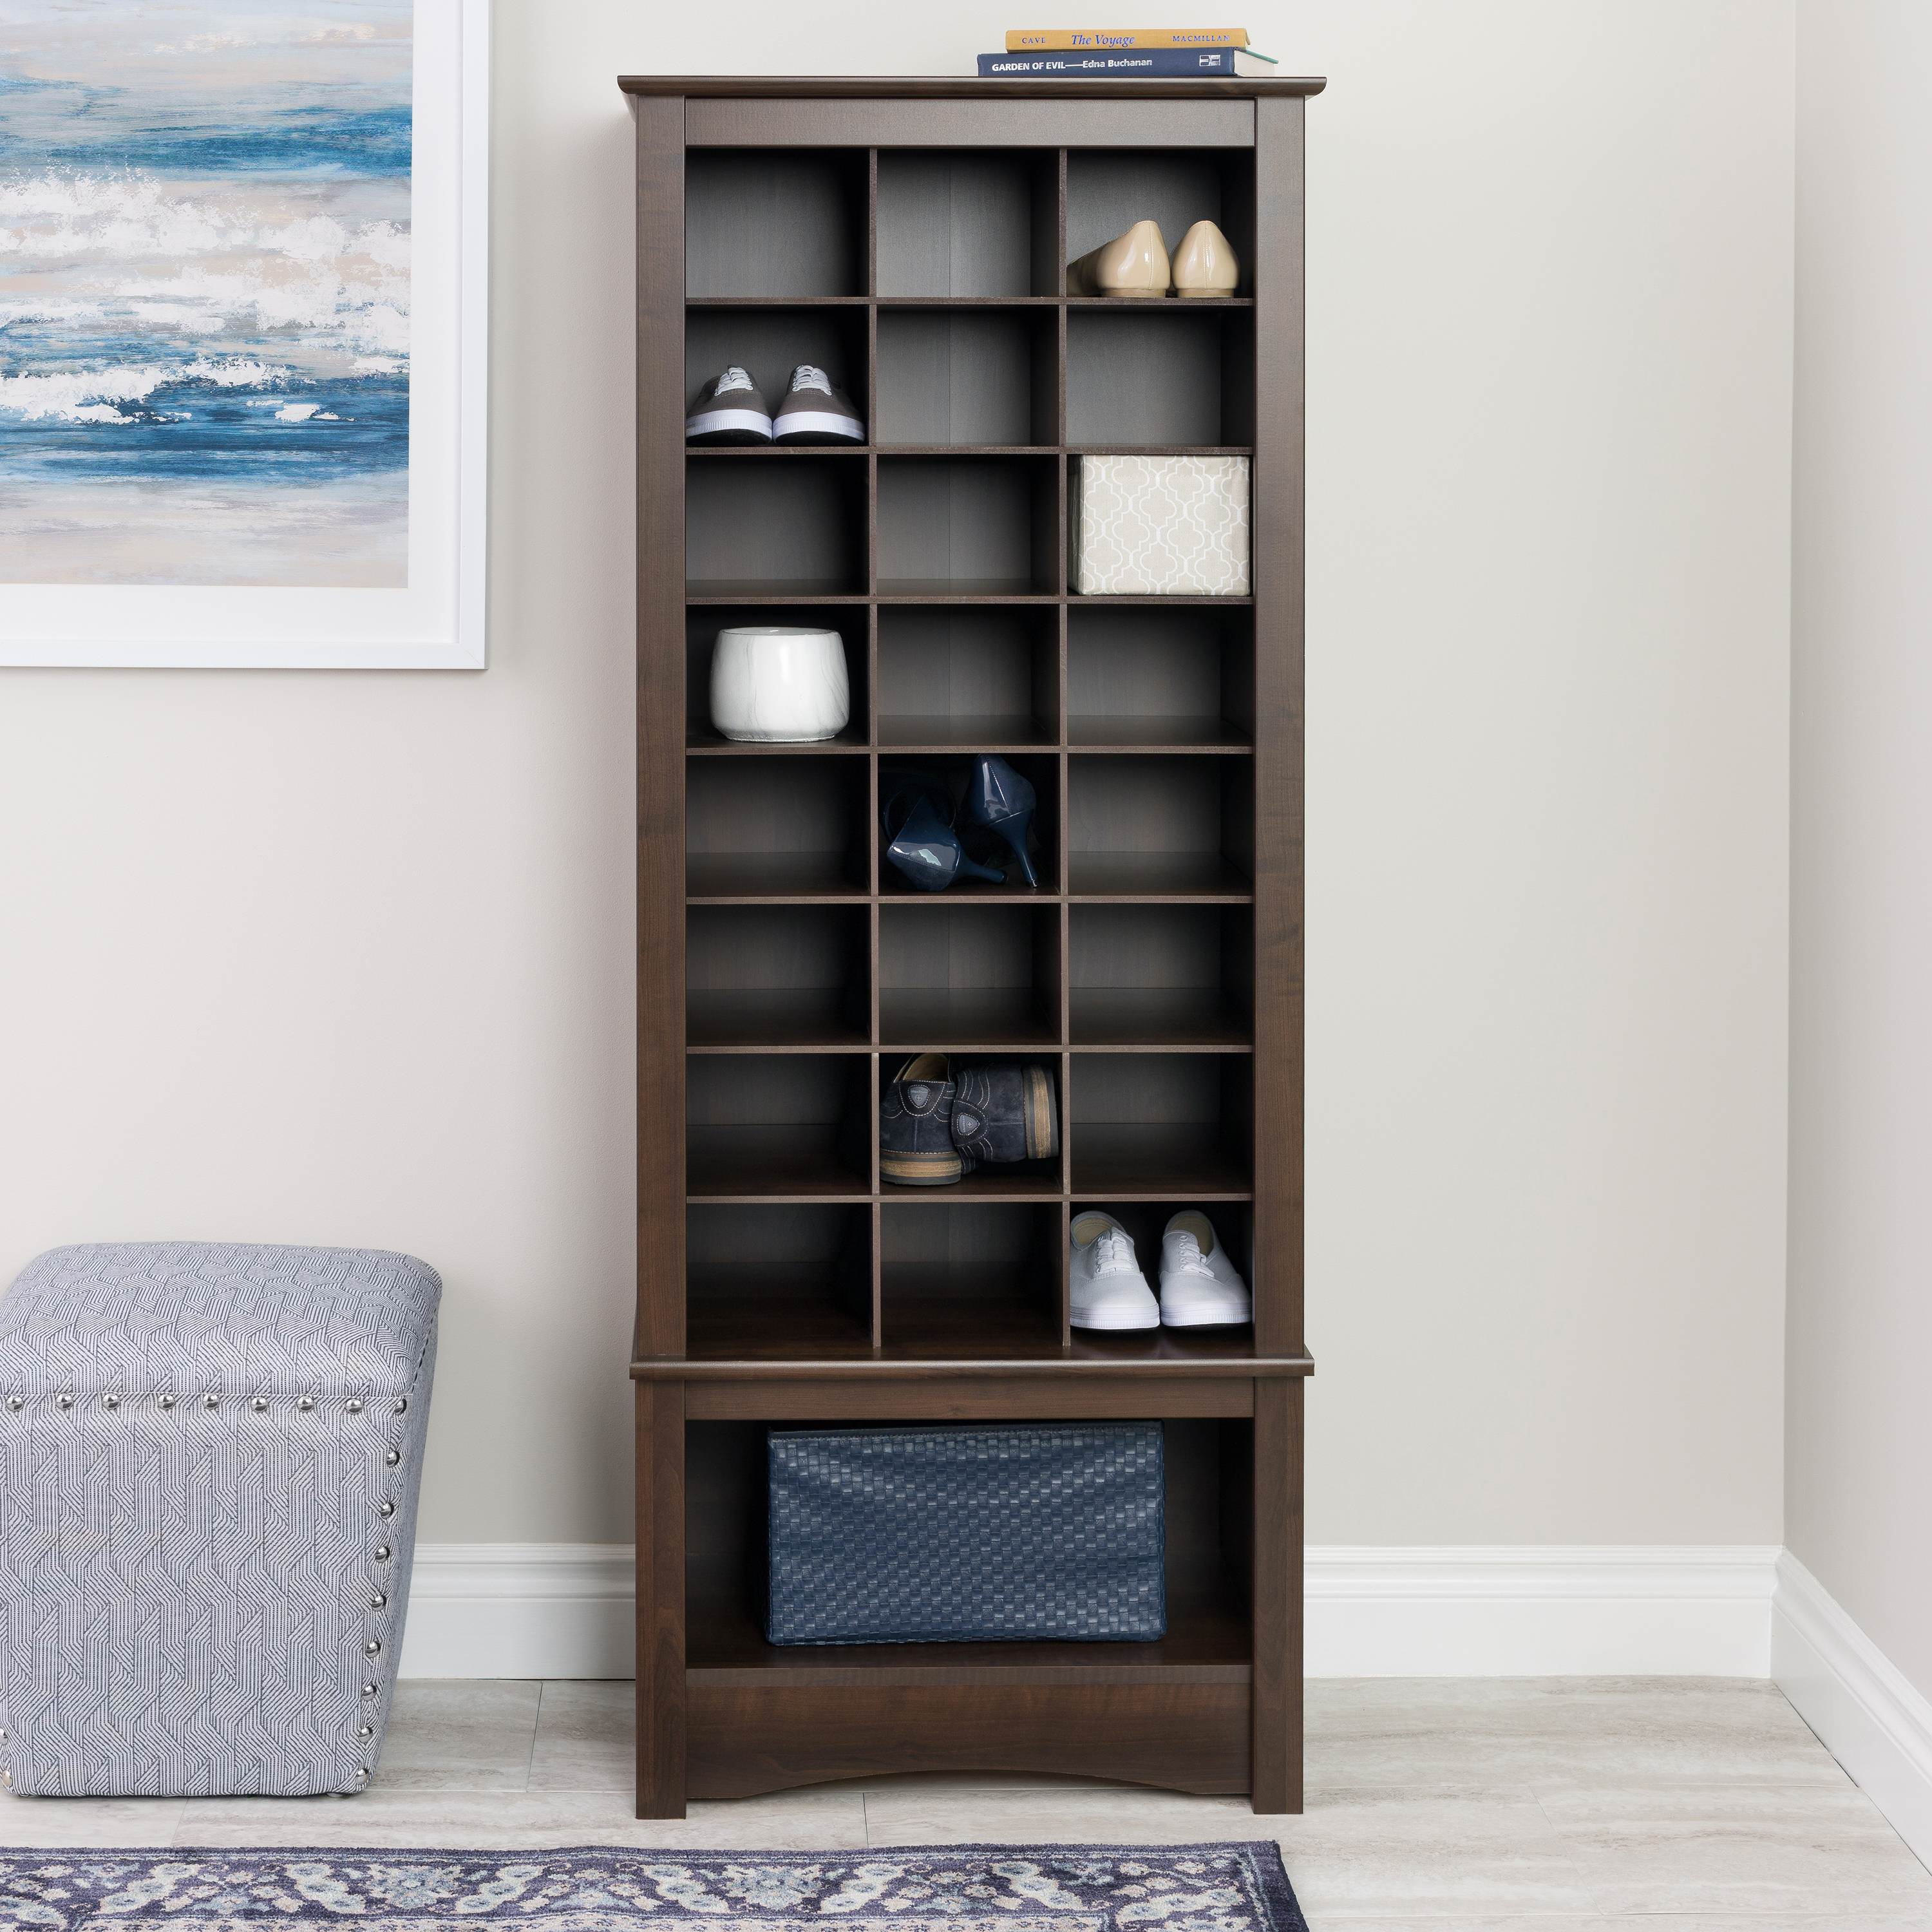 Prepac 24 pair Shoe Storage Rack with bottom shelf, Espresso